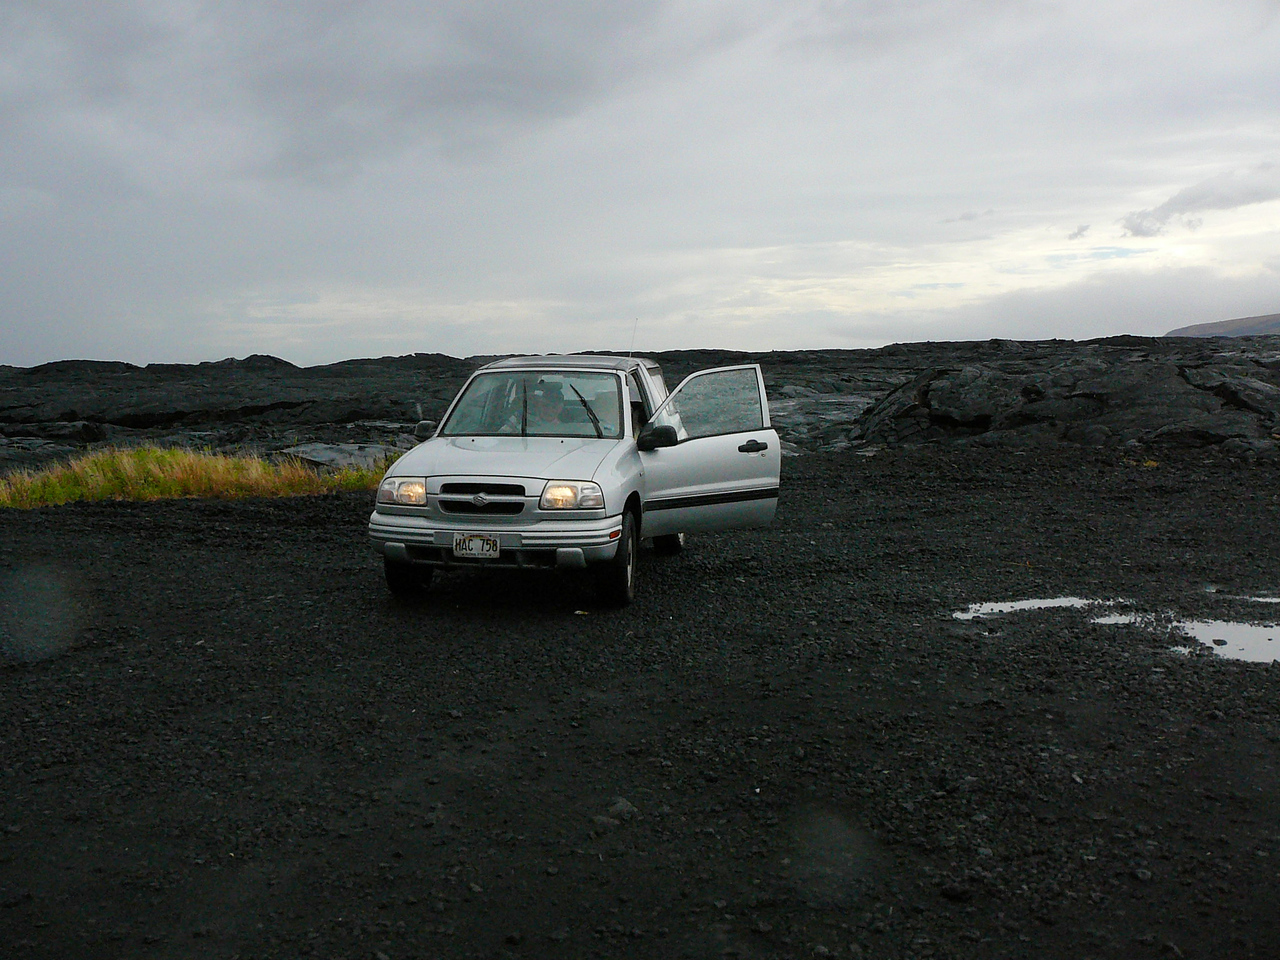 Our ride at the dead end